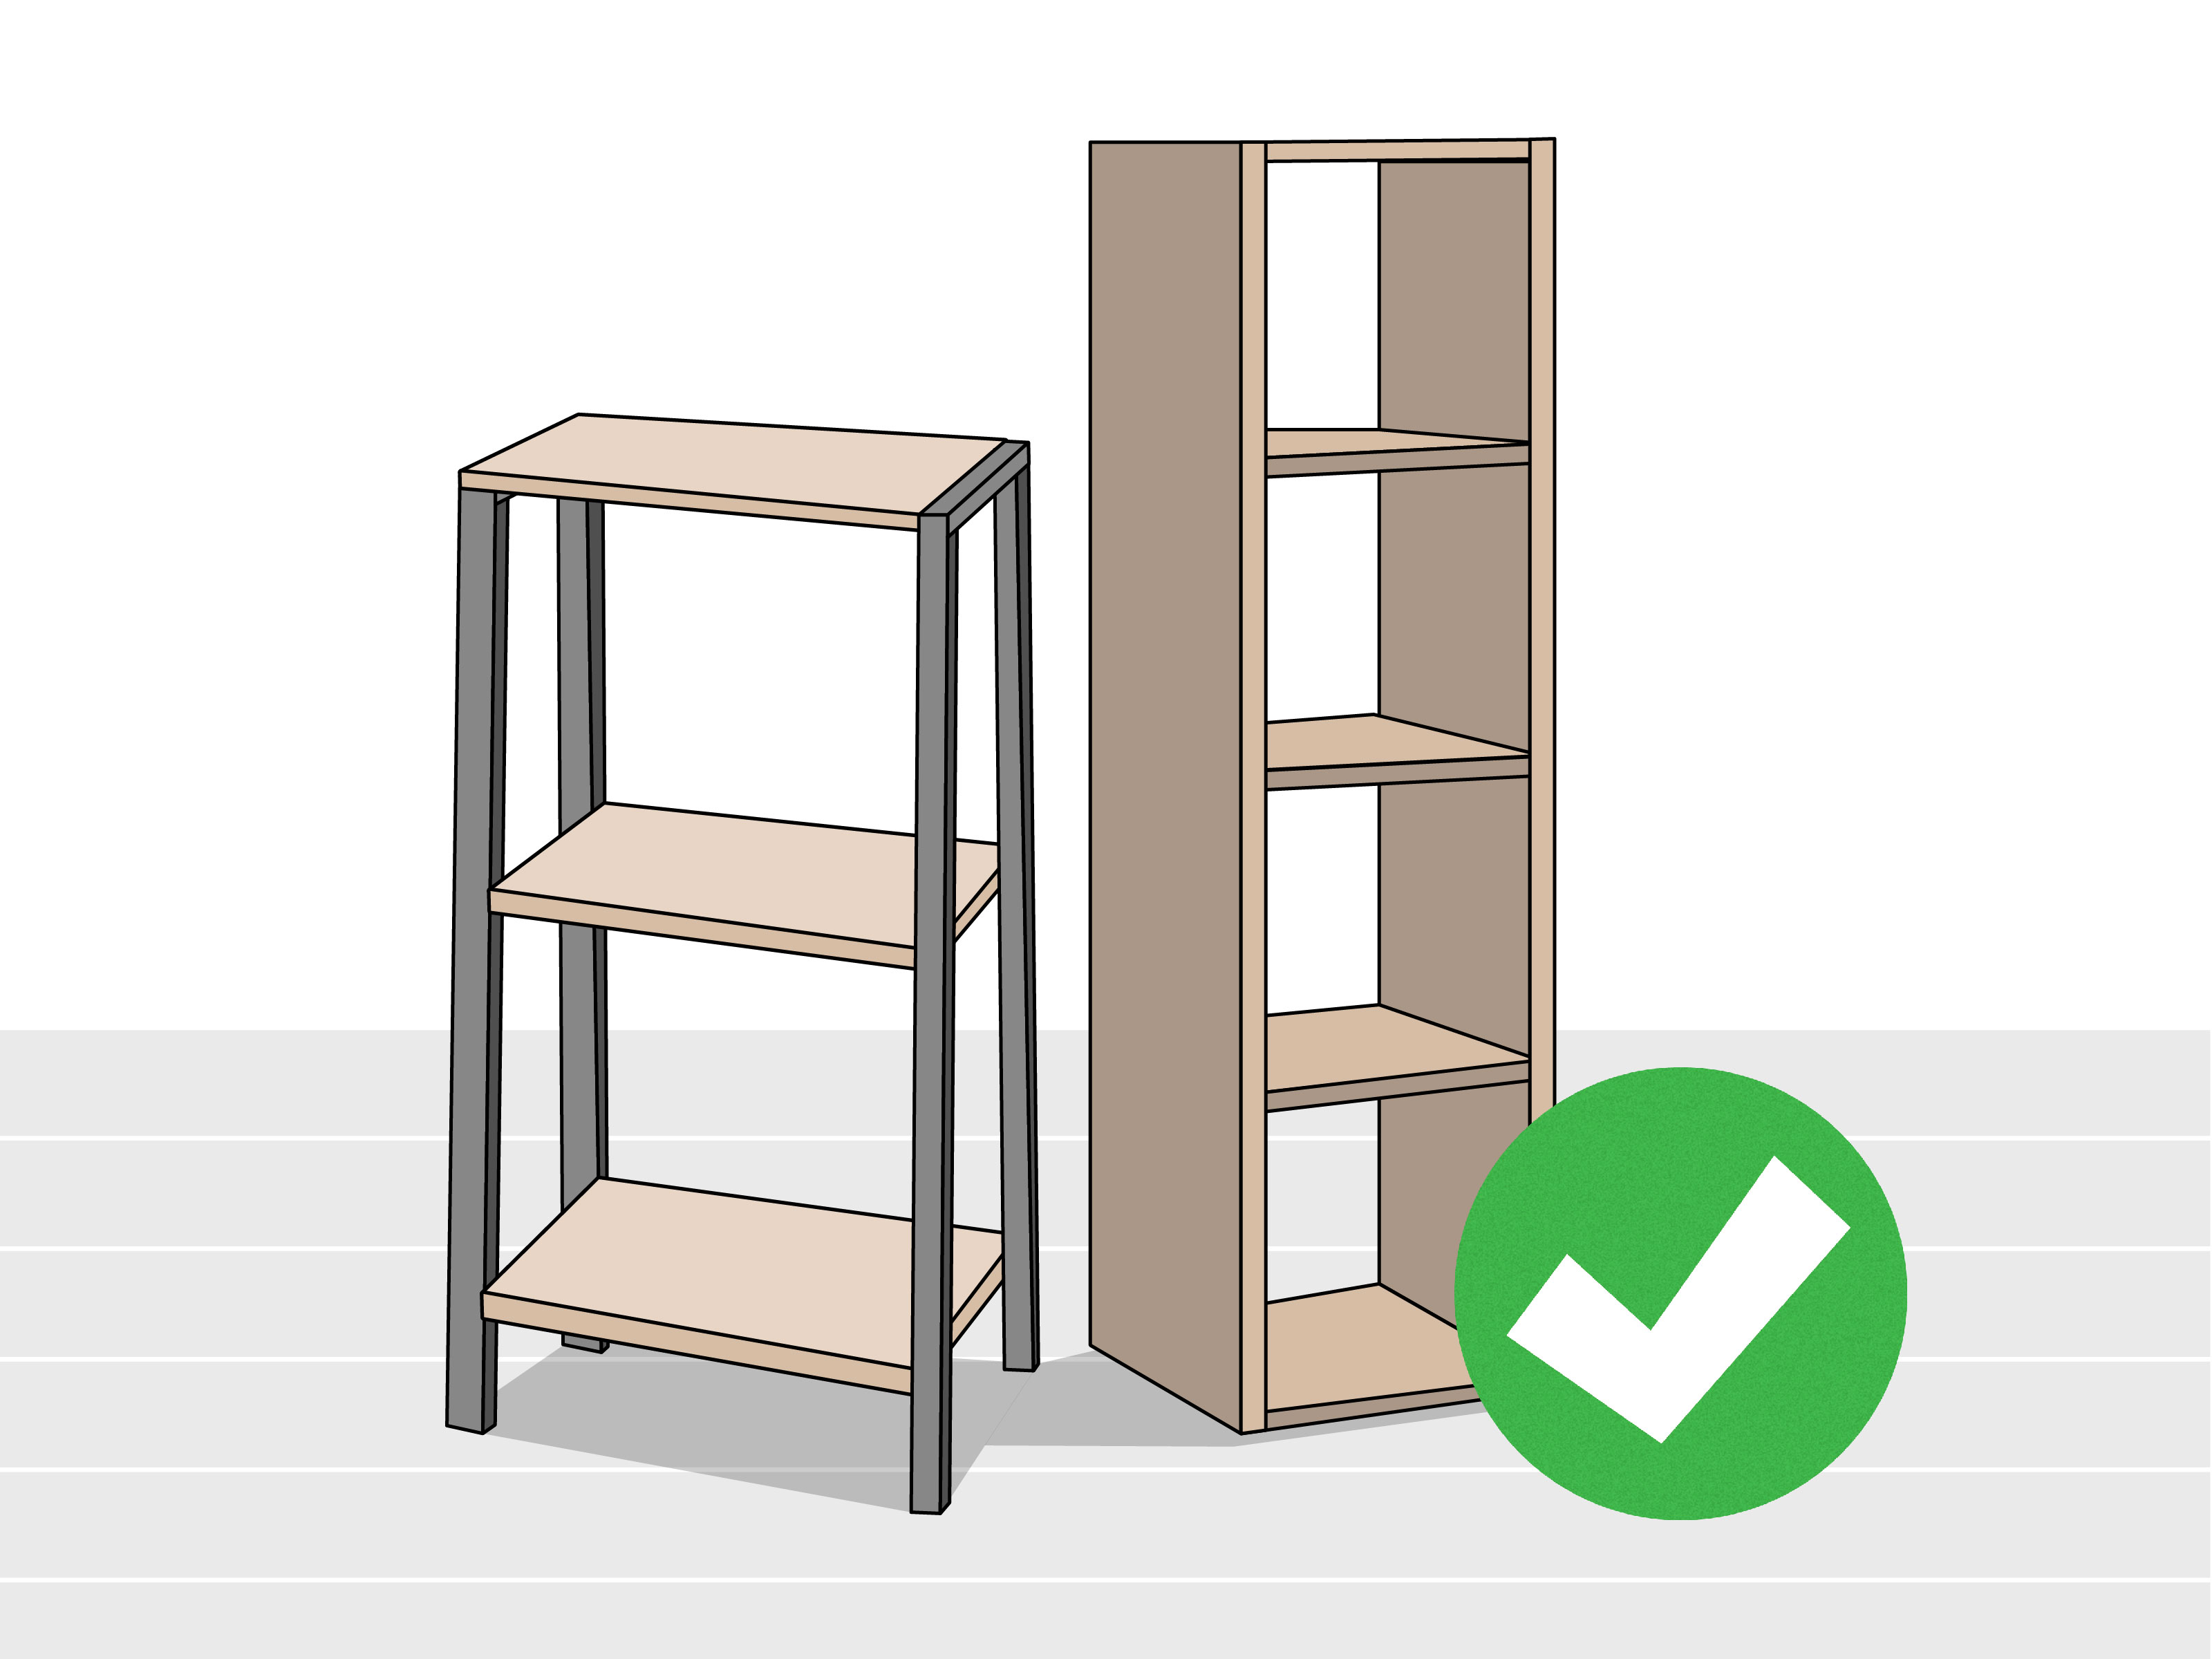 How To Hang Shelves Without Nails: 11 Steps (with Pictures)